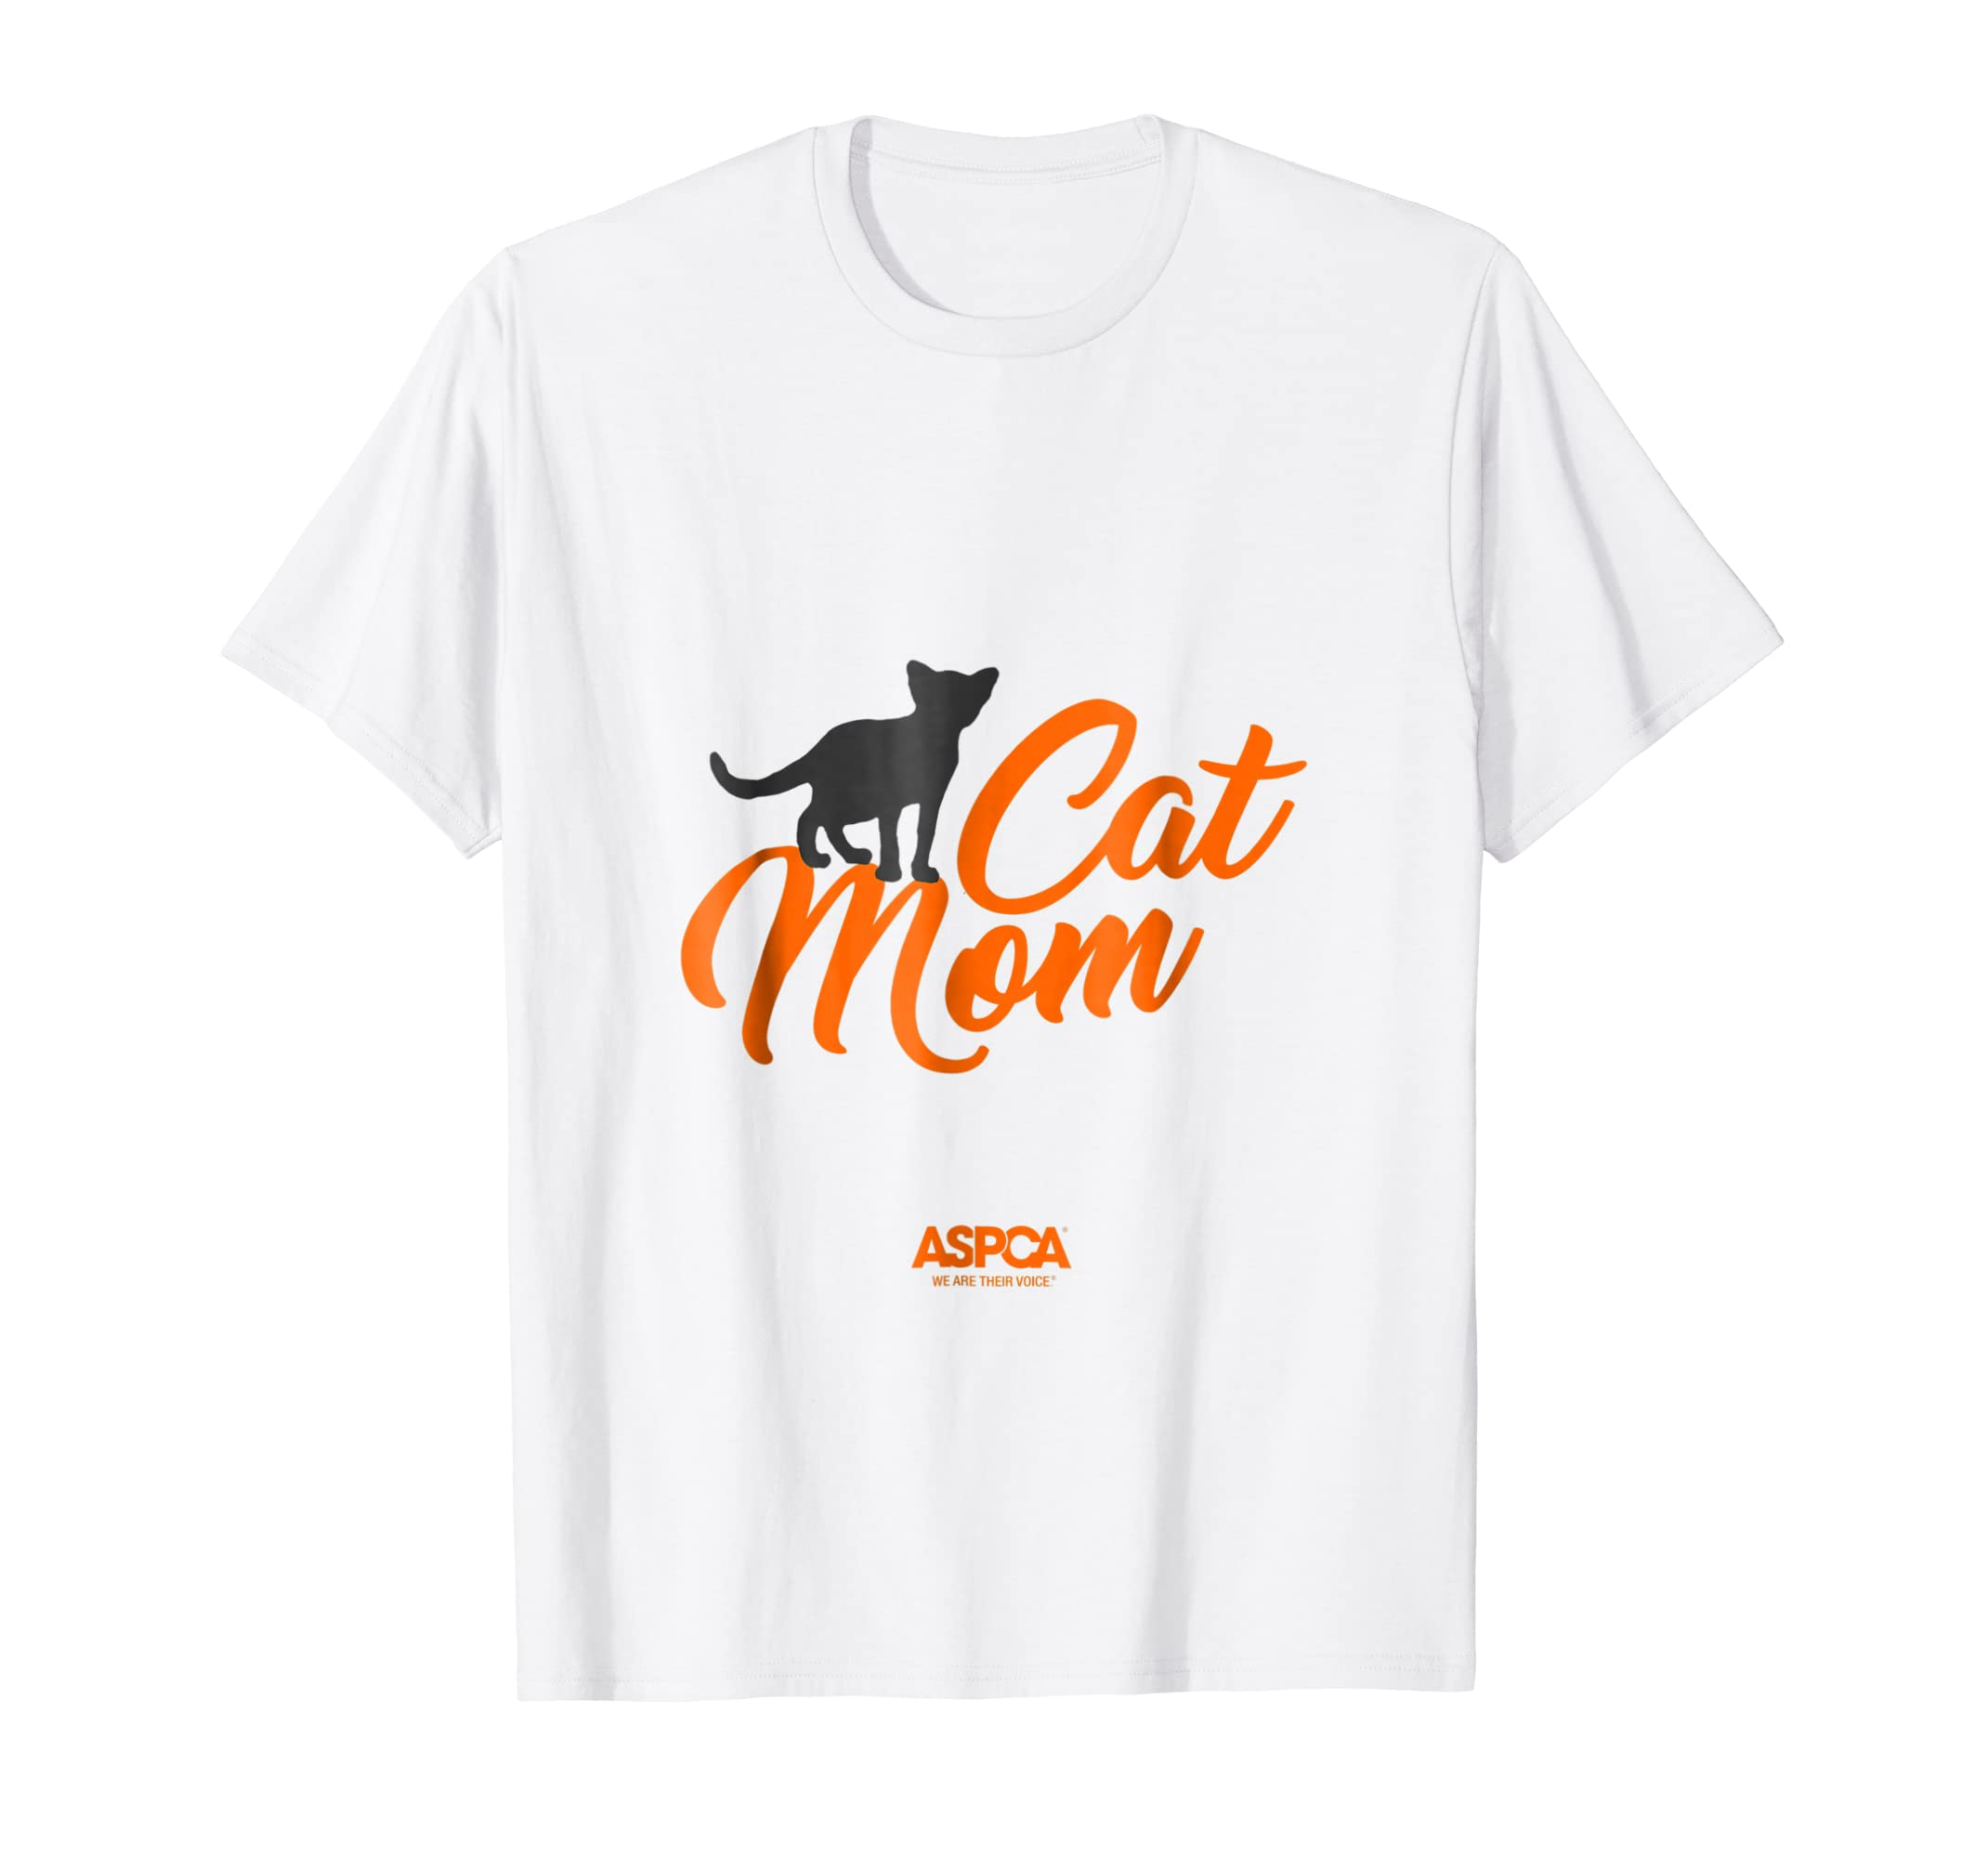 9fab3218b2 Amazon.com  ASPCA Cat Mom T-Shirt Light  Clothing